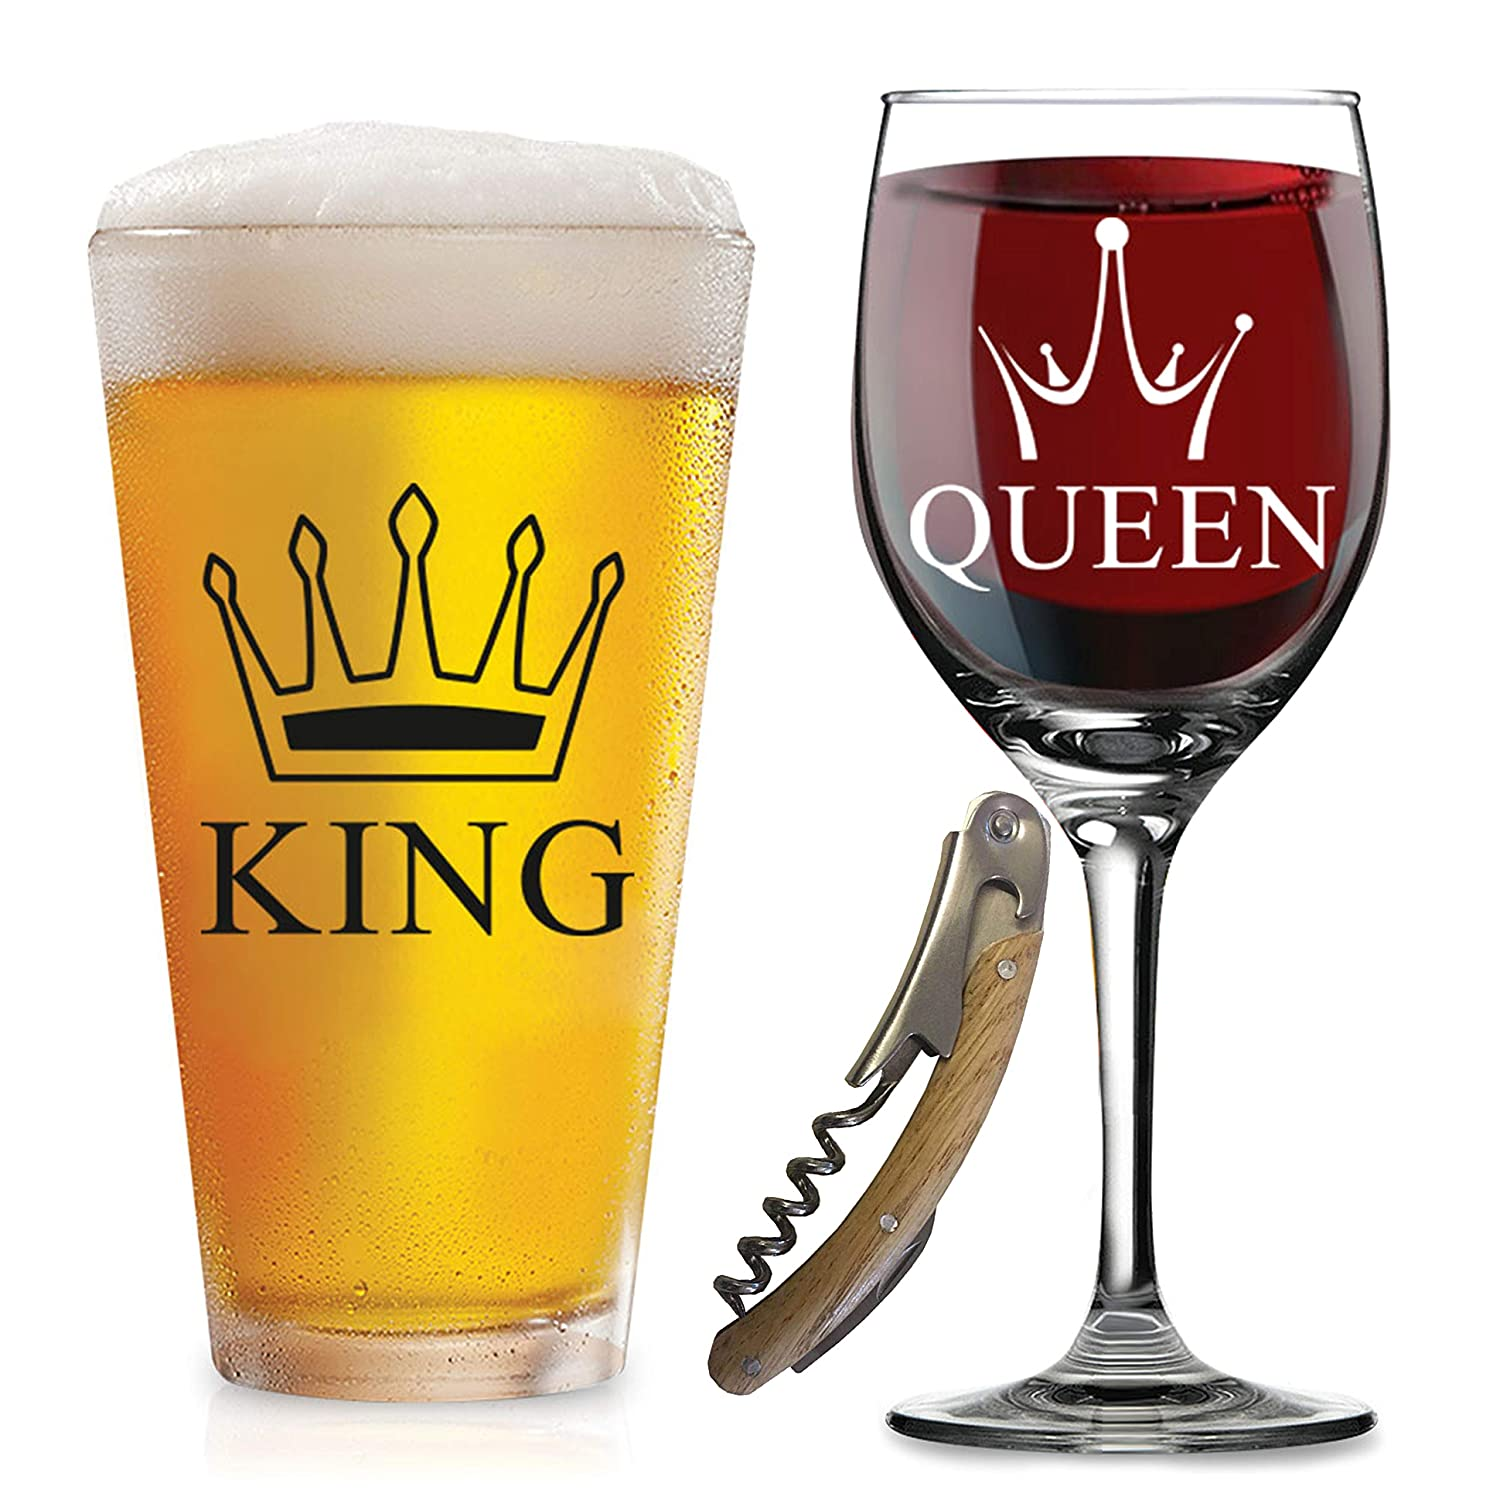 Funny Wedding Gifts.Sale King Queen Glasses With Free Bottle Opener Funny Wedding Gifts For Wedding Engagement Couples Anniversary Birthday Newlyweds